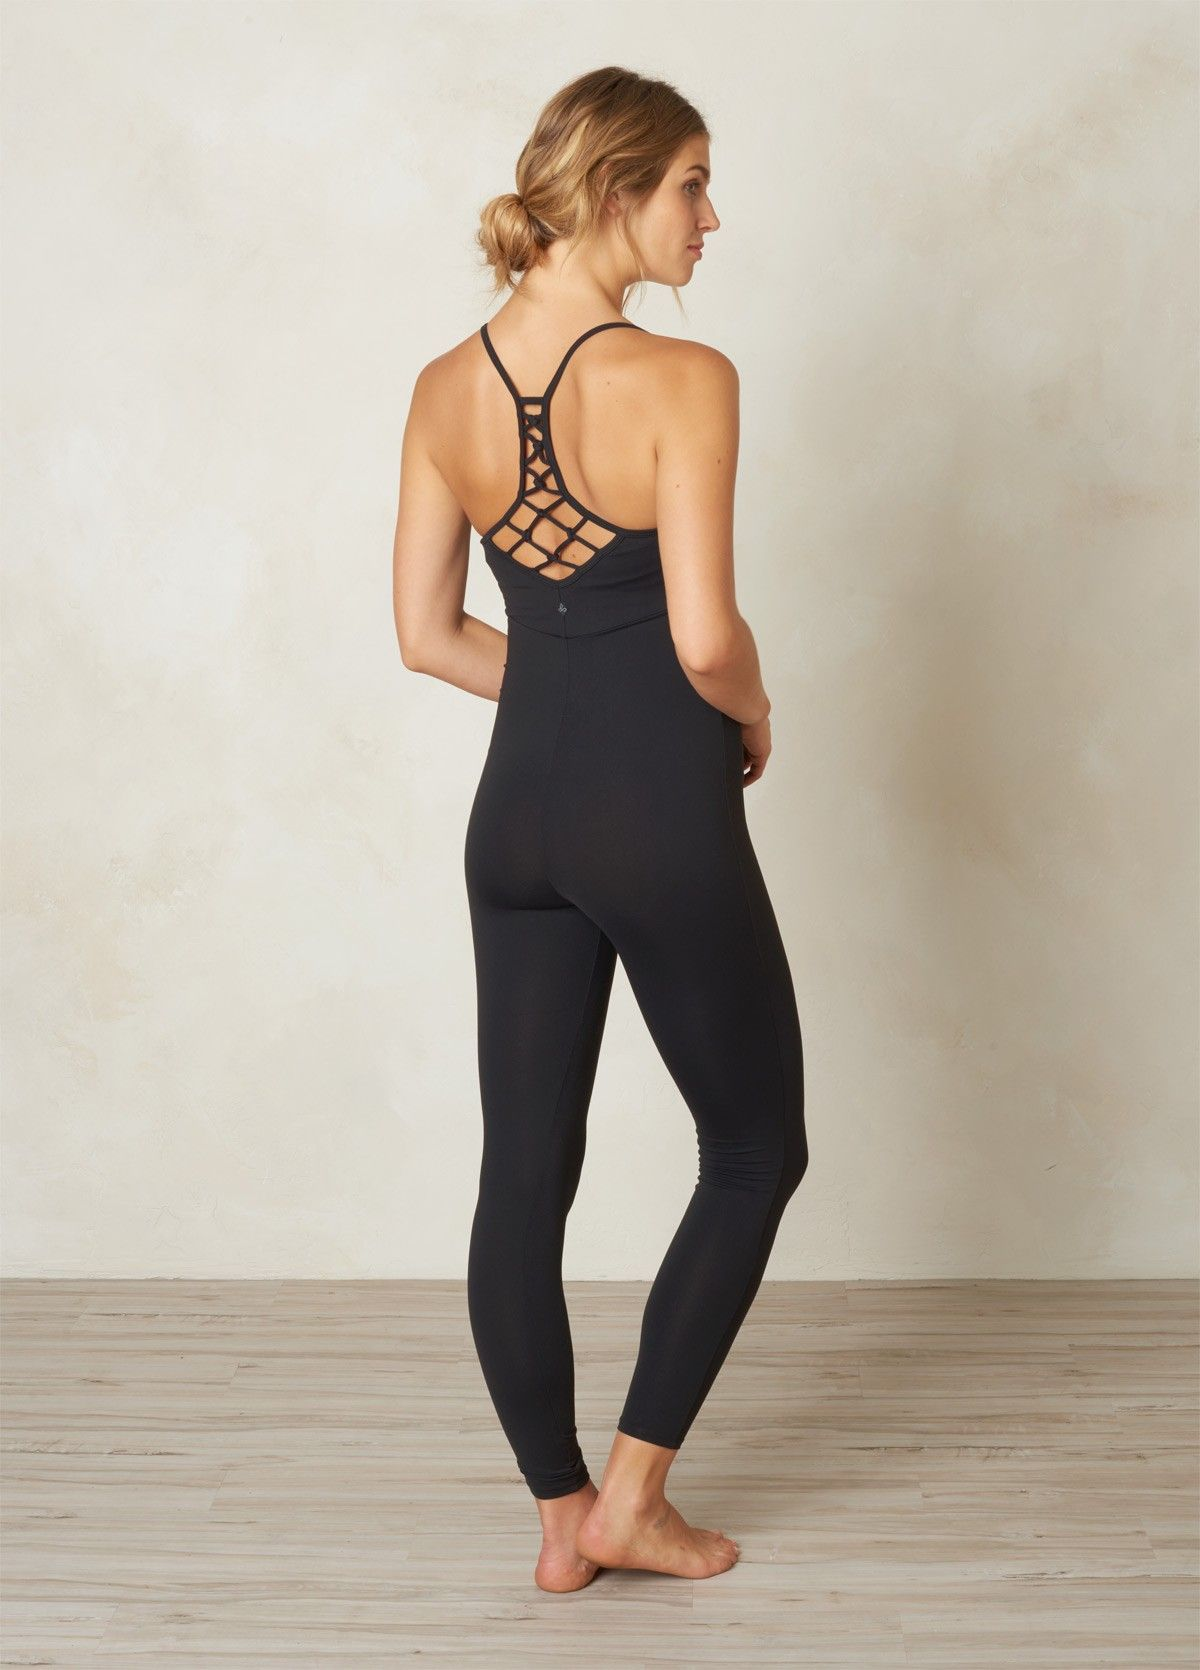 Yoga clothes for women uk